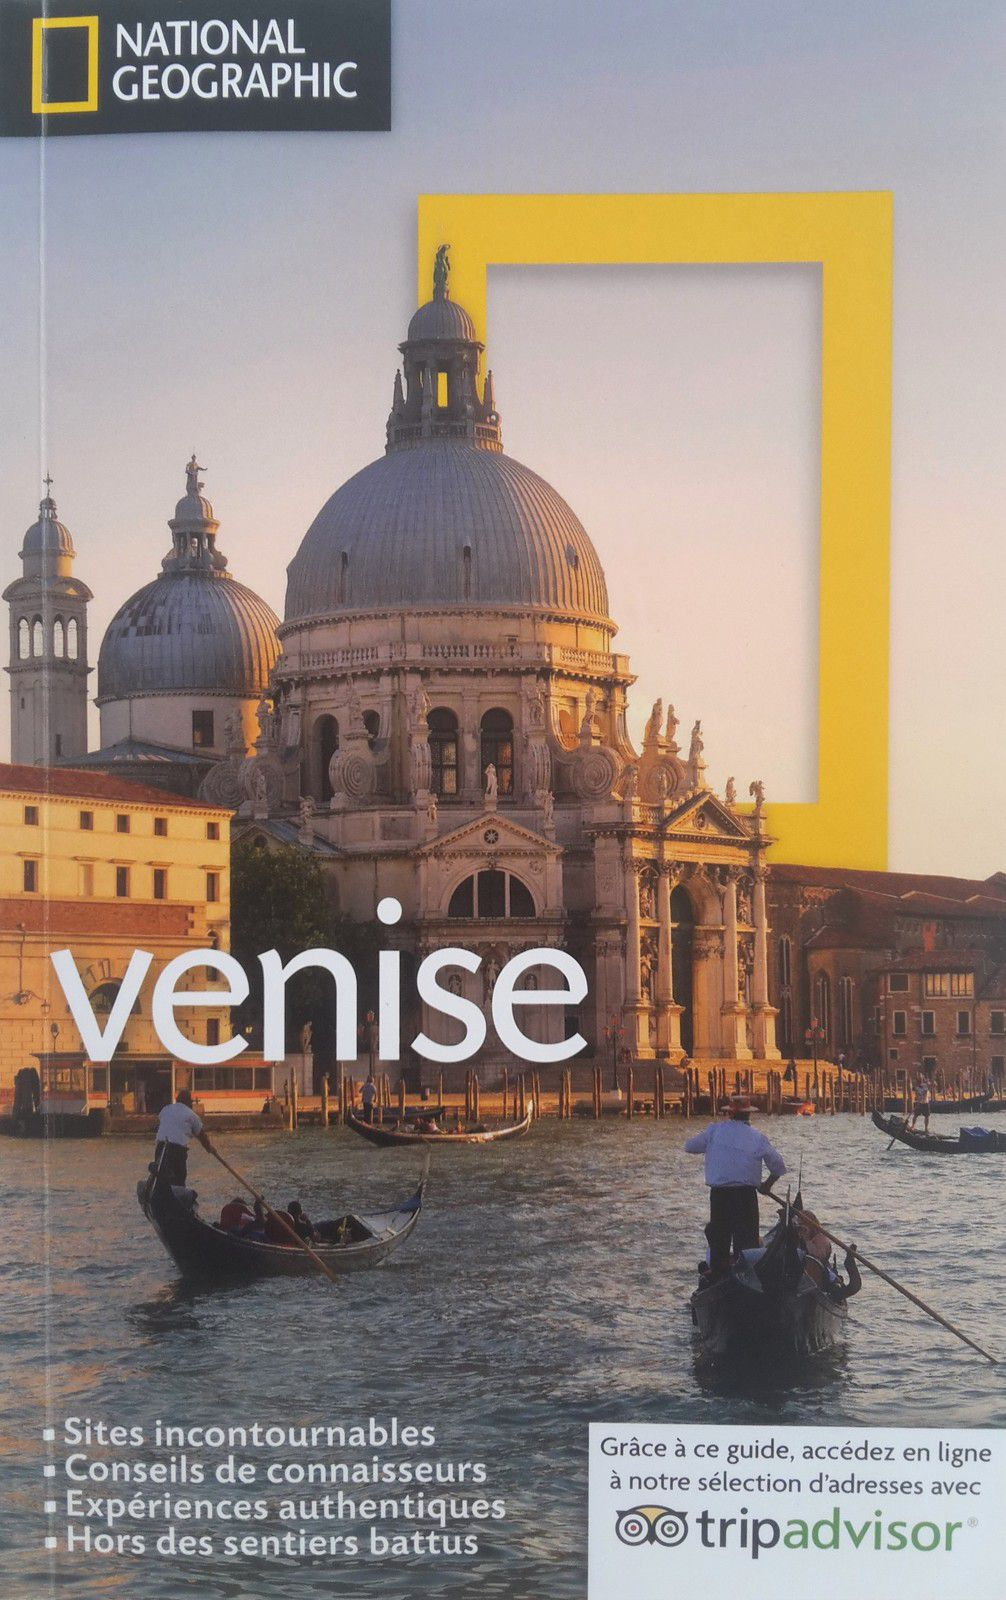 Venise, voyage, guide national geographic